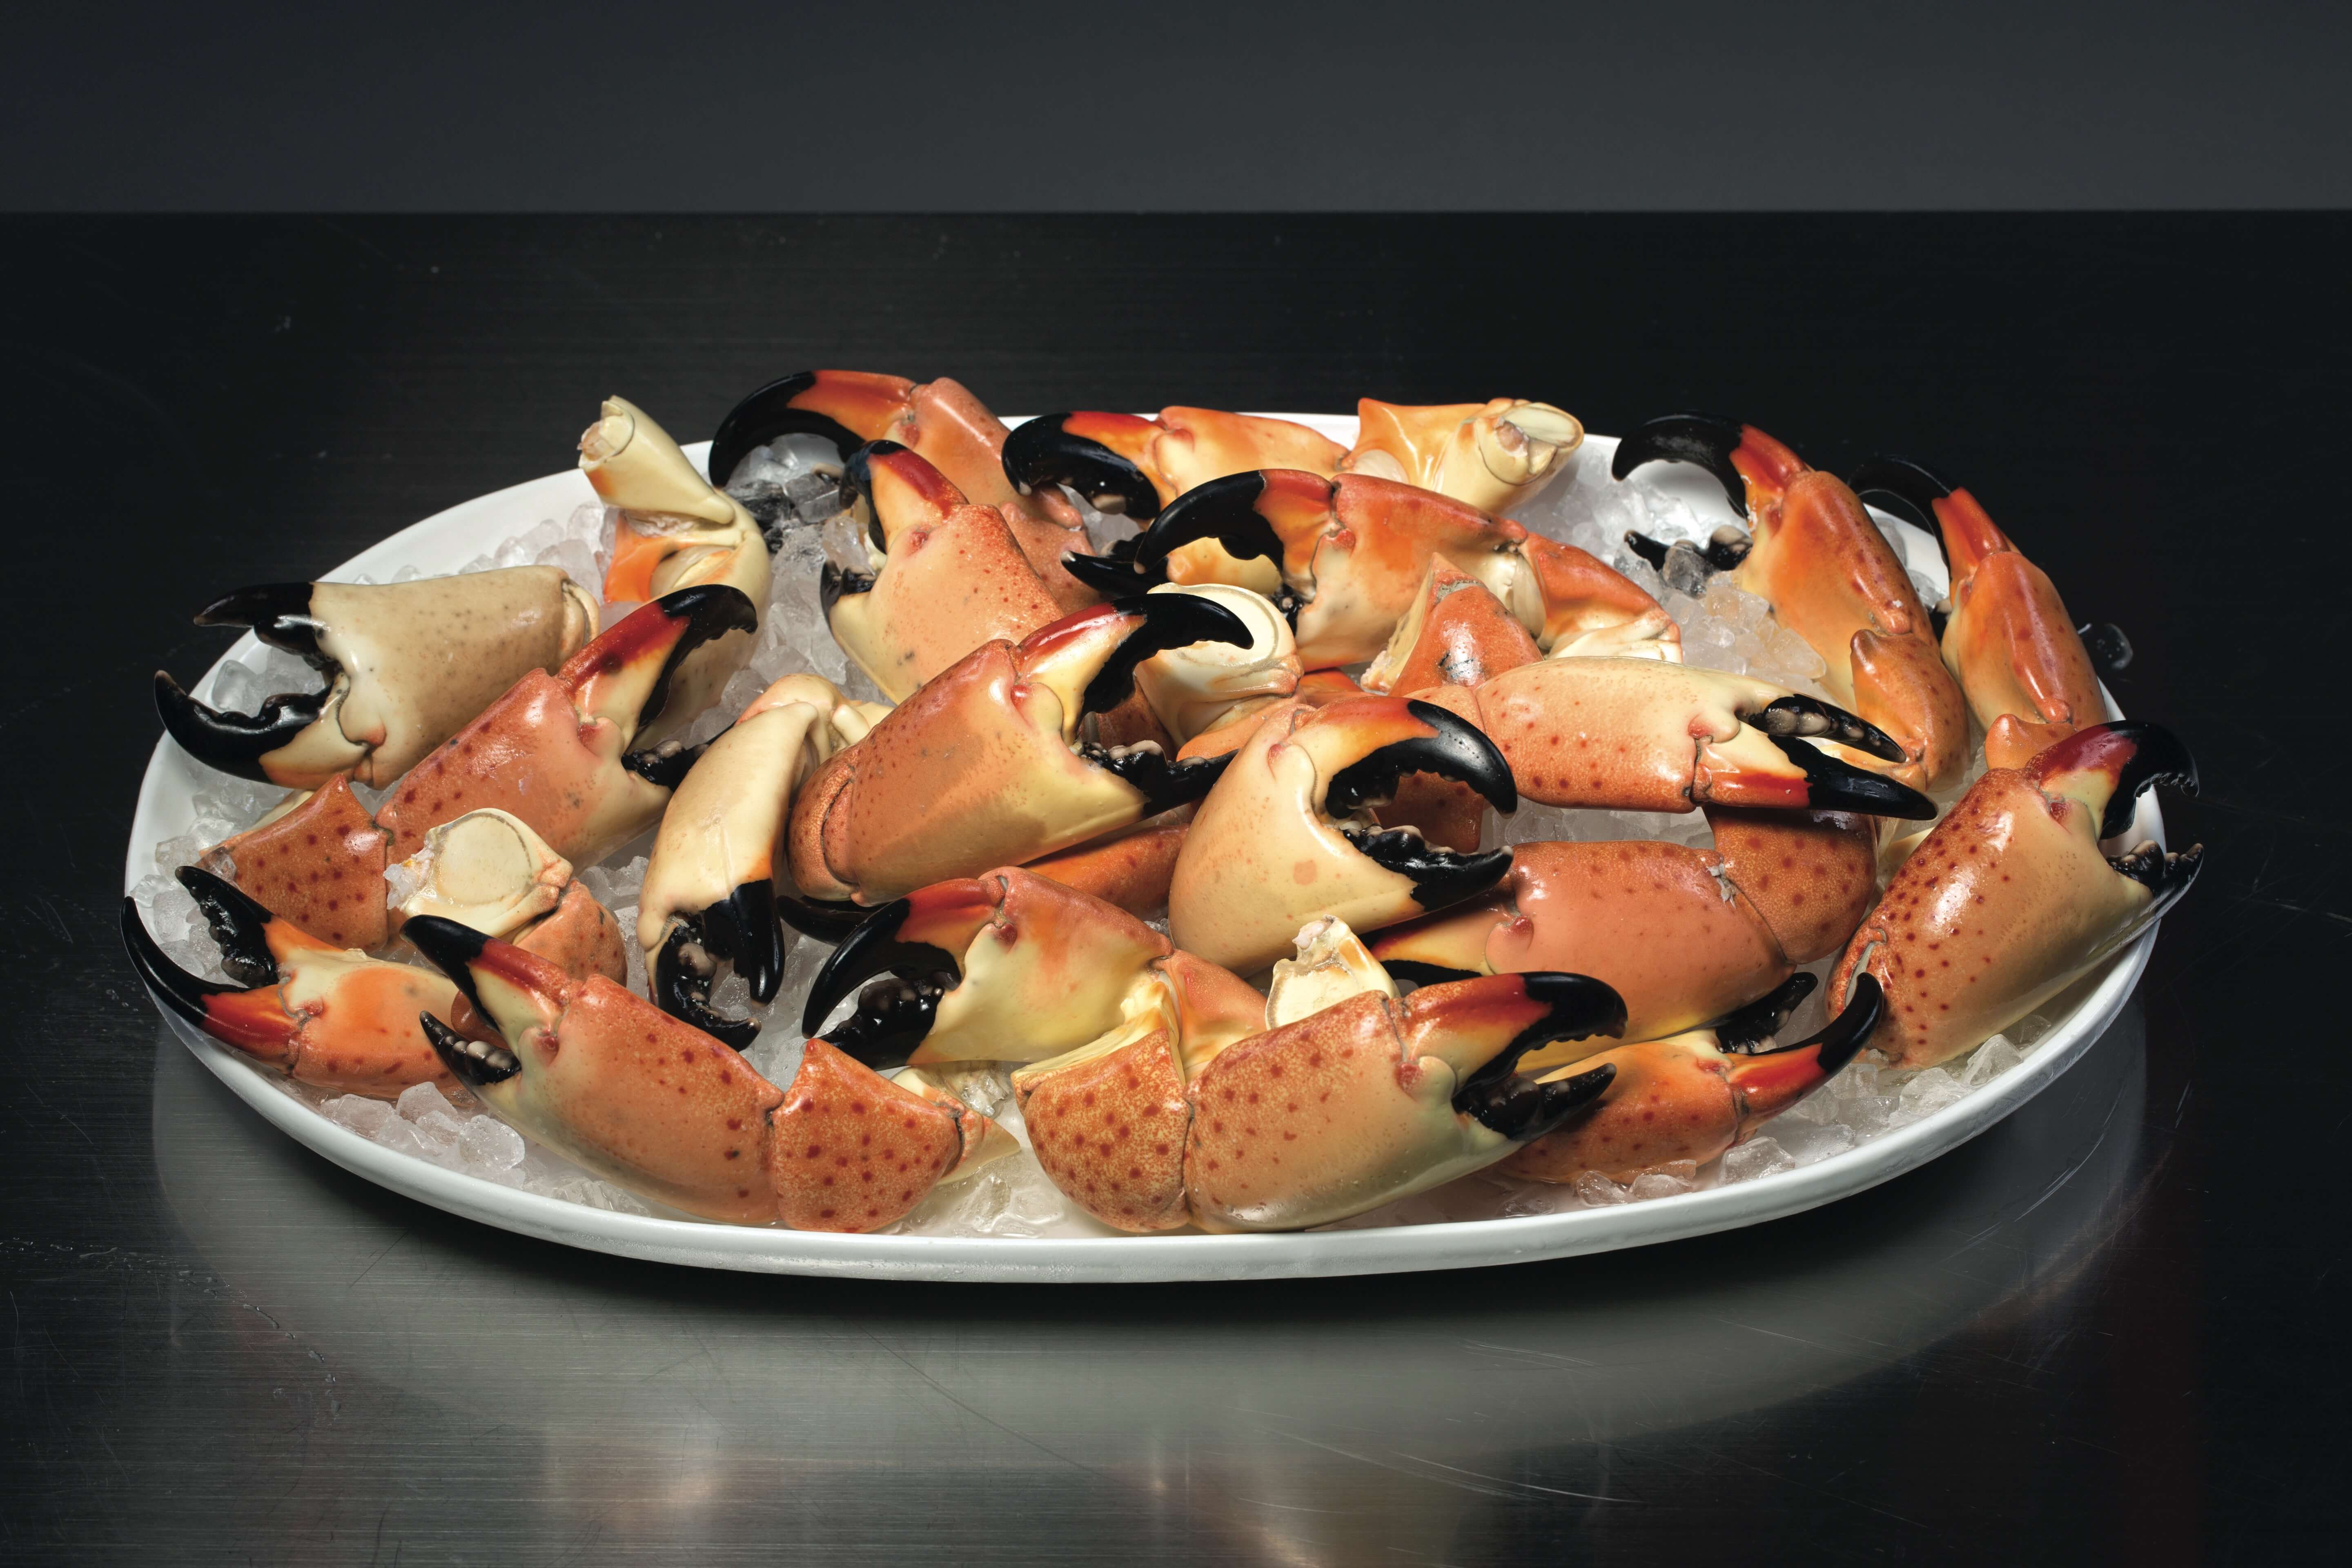 Platter of fresh crab claws on ice